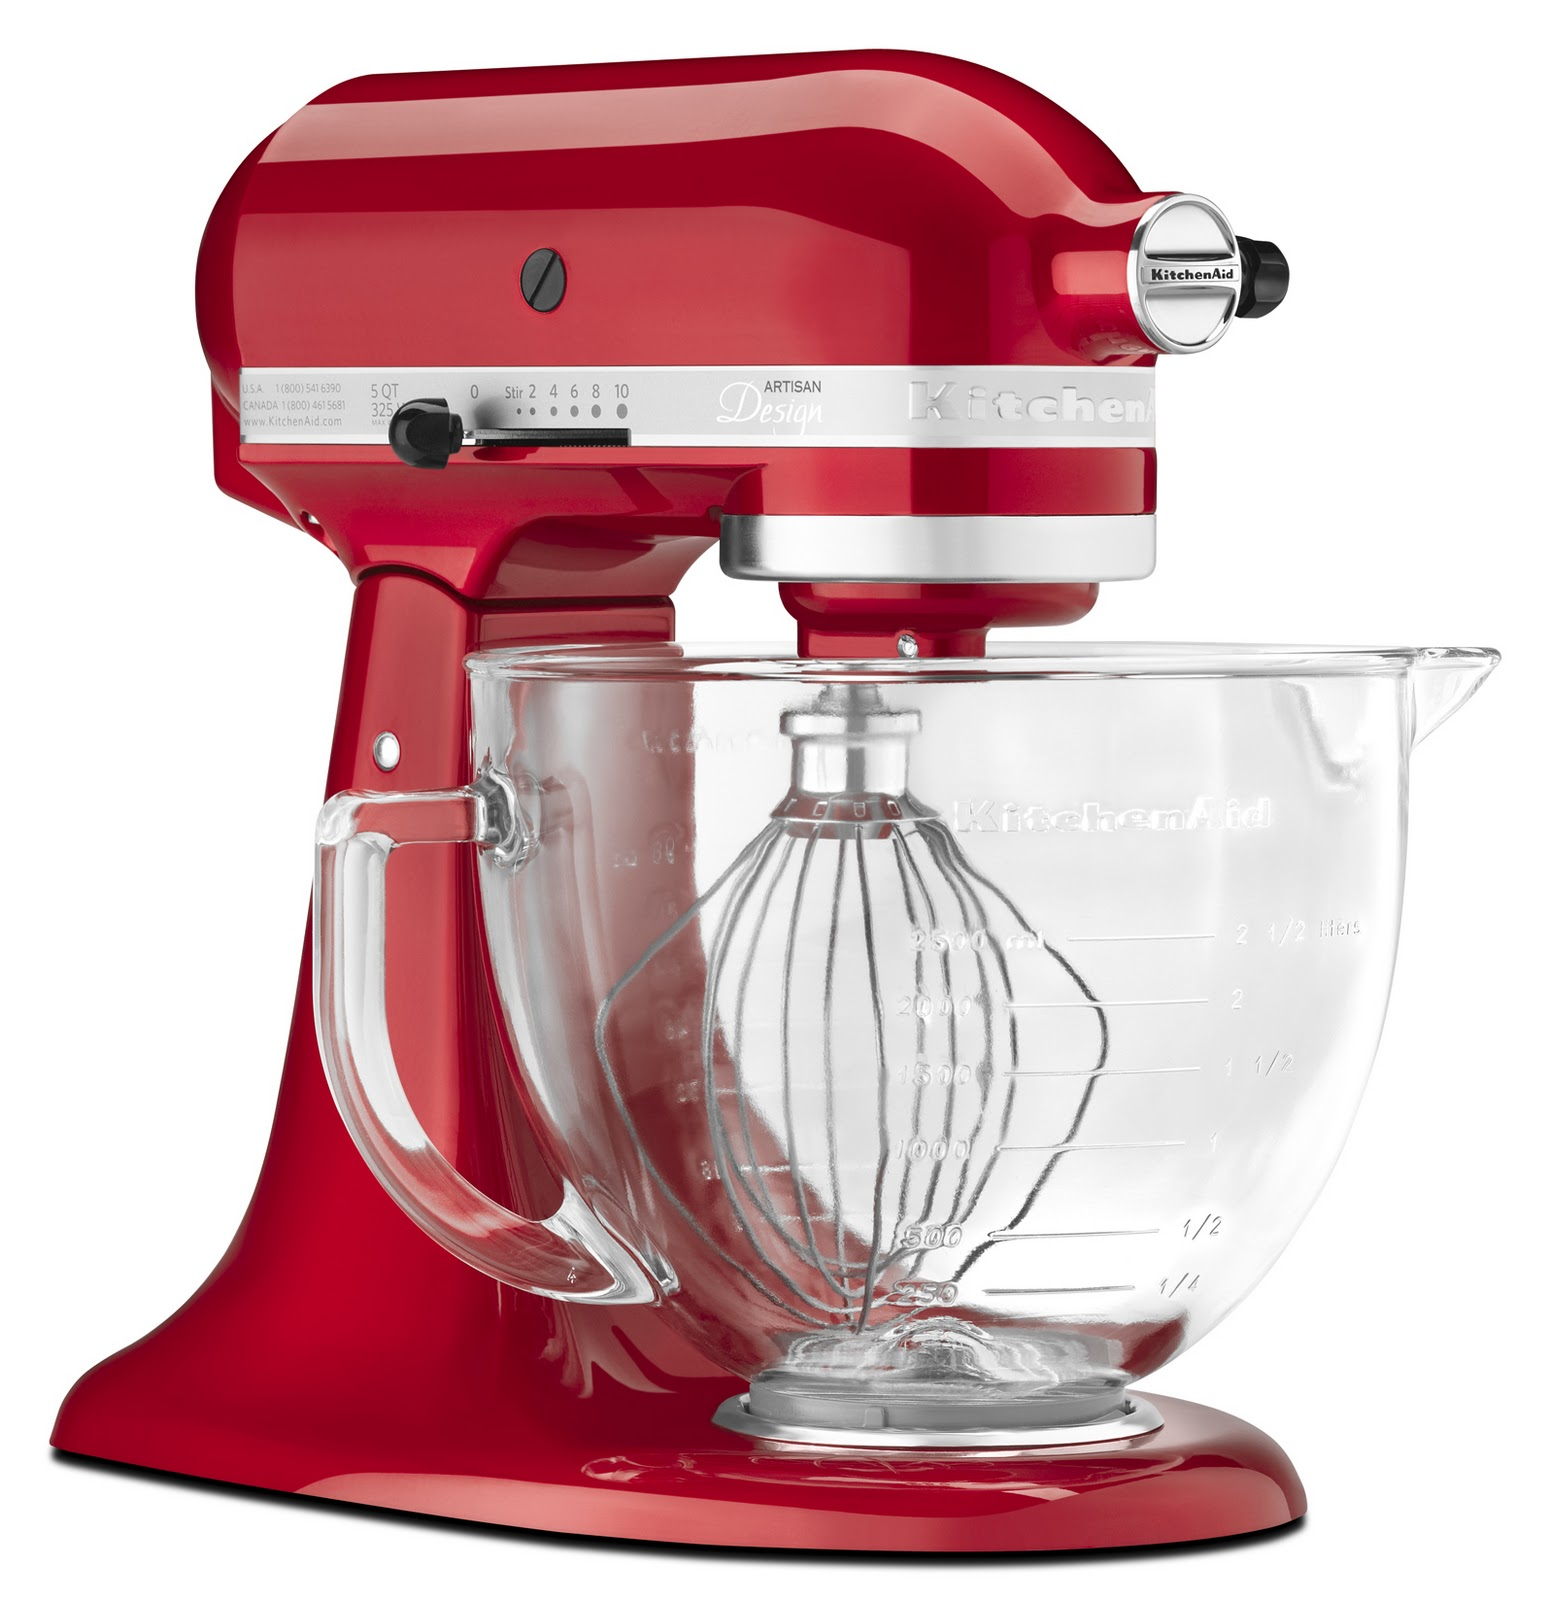 Kitchenaid ultra power stand mixer | Kitchen ideas